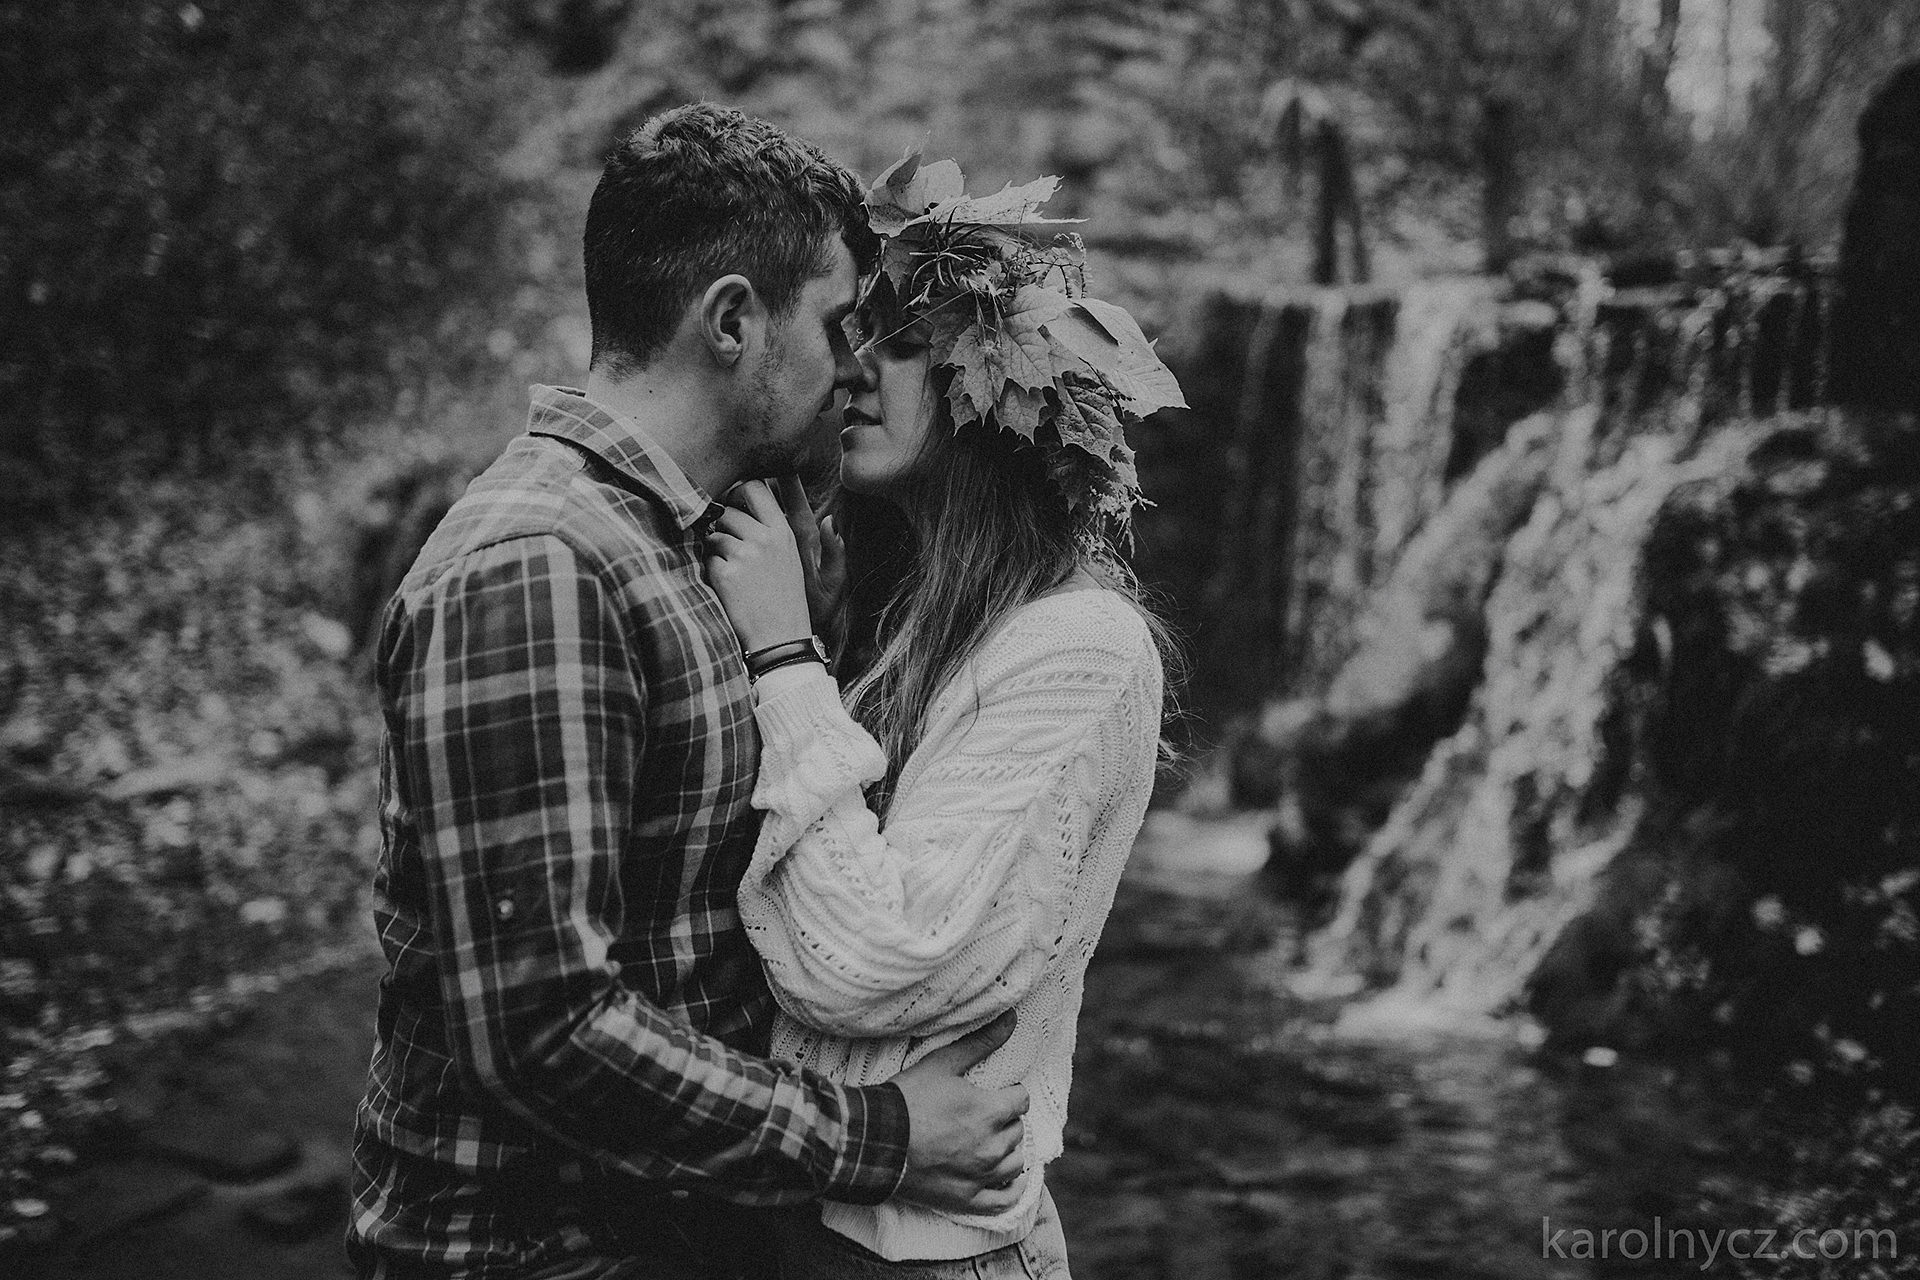 the beautiful forest scenery of the engagement session